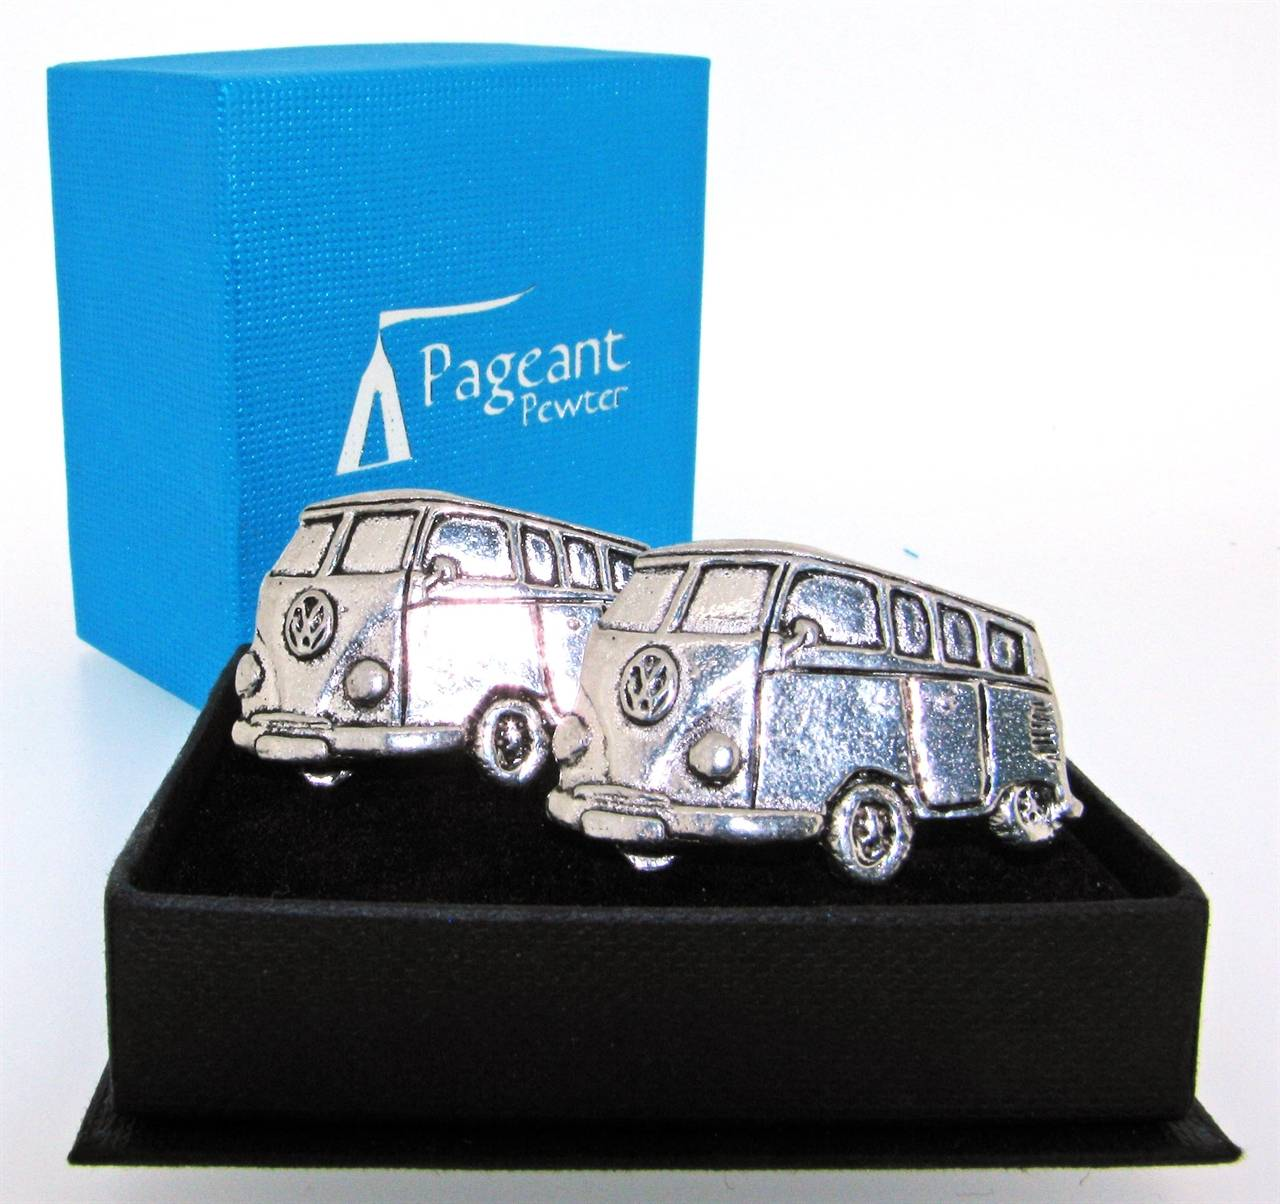 Camper Cufflinks - high quality pewter gifts from Pageant Pewter